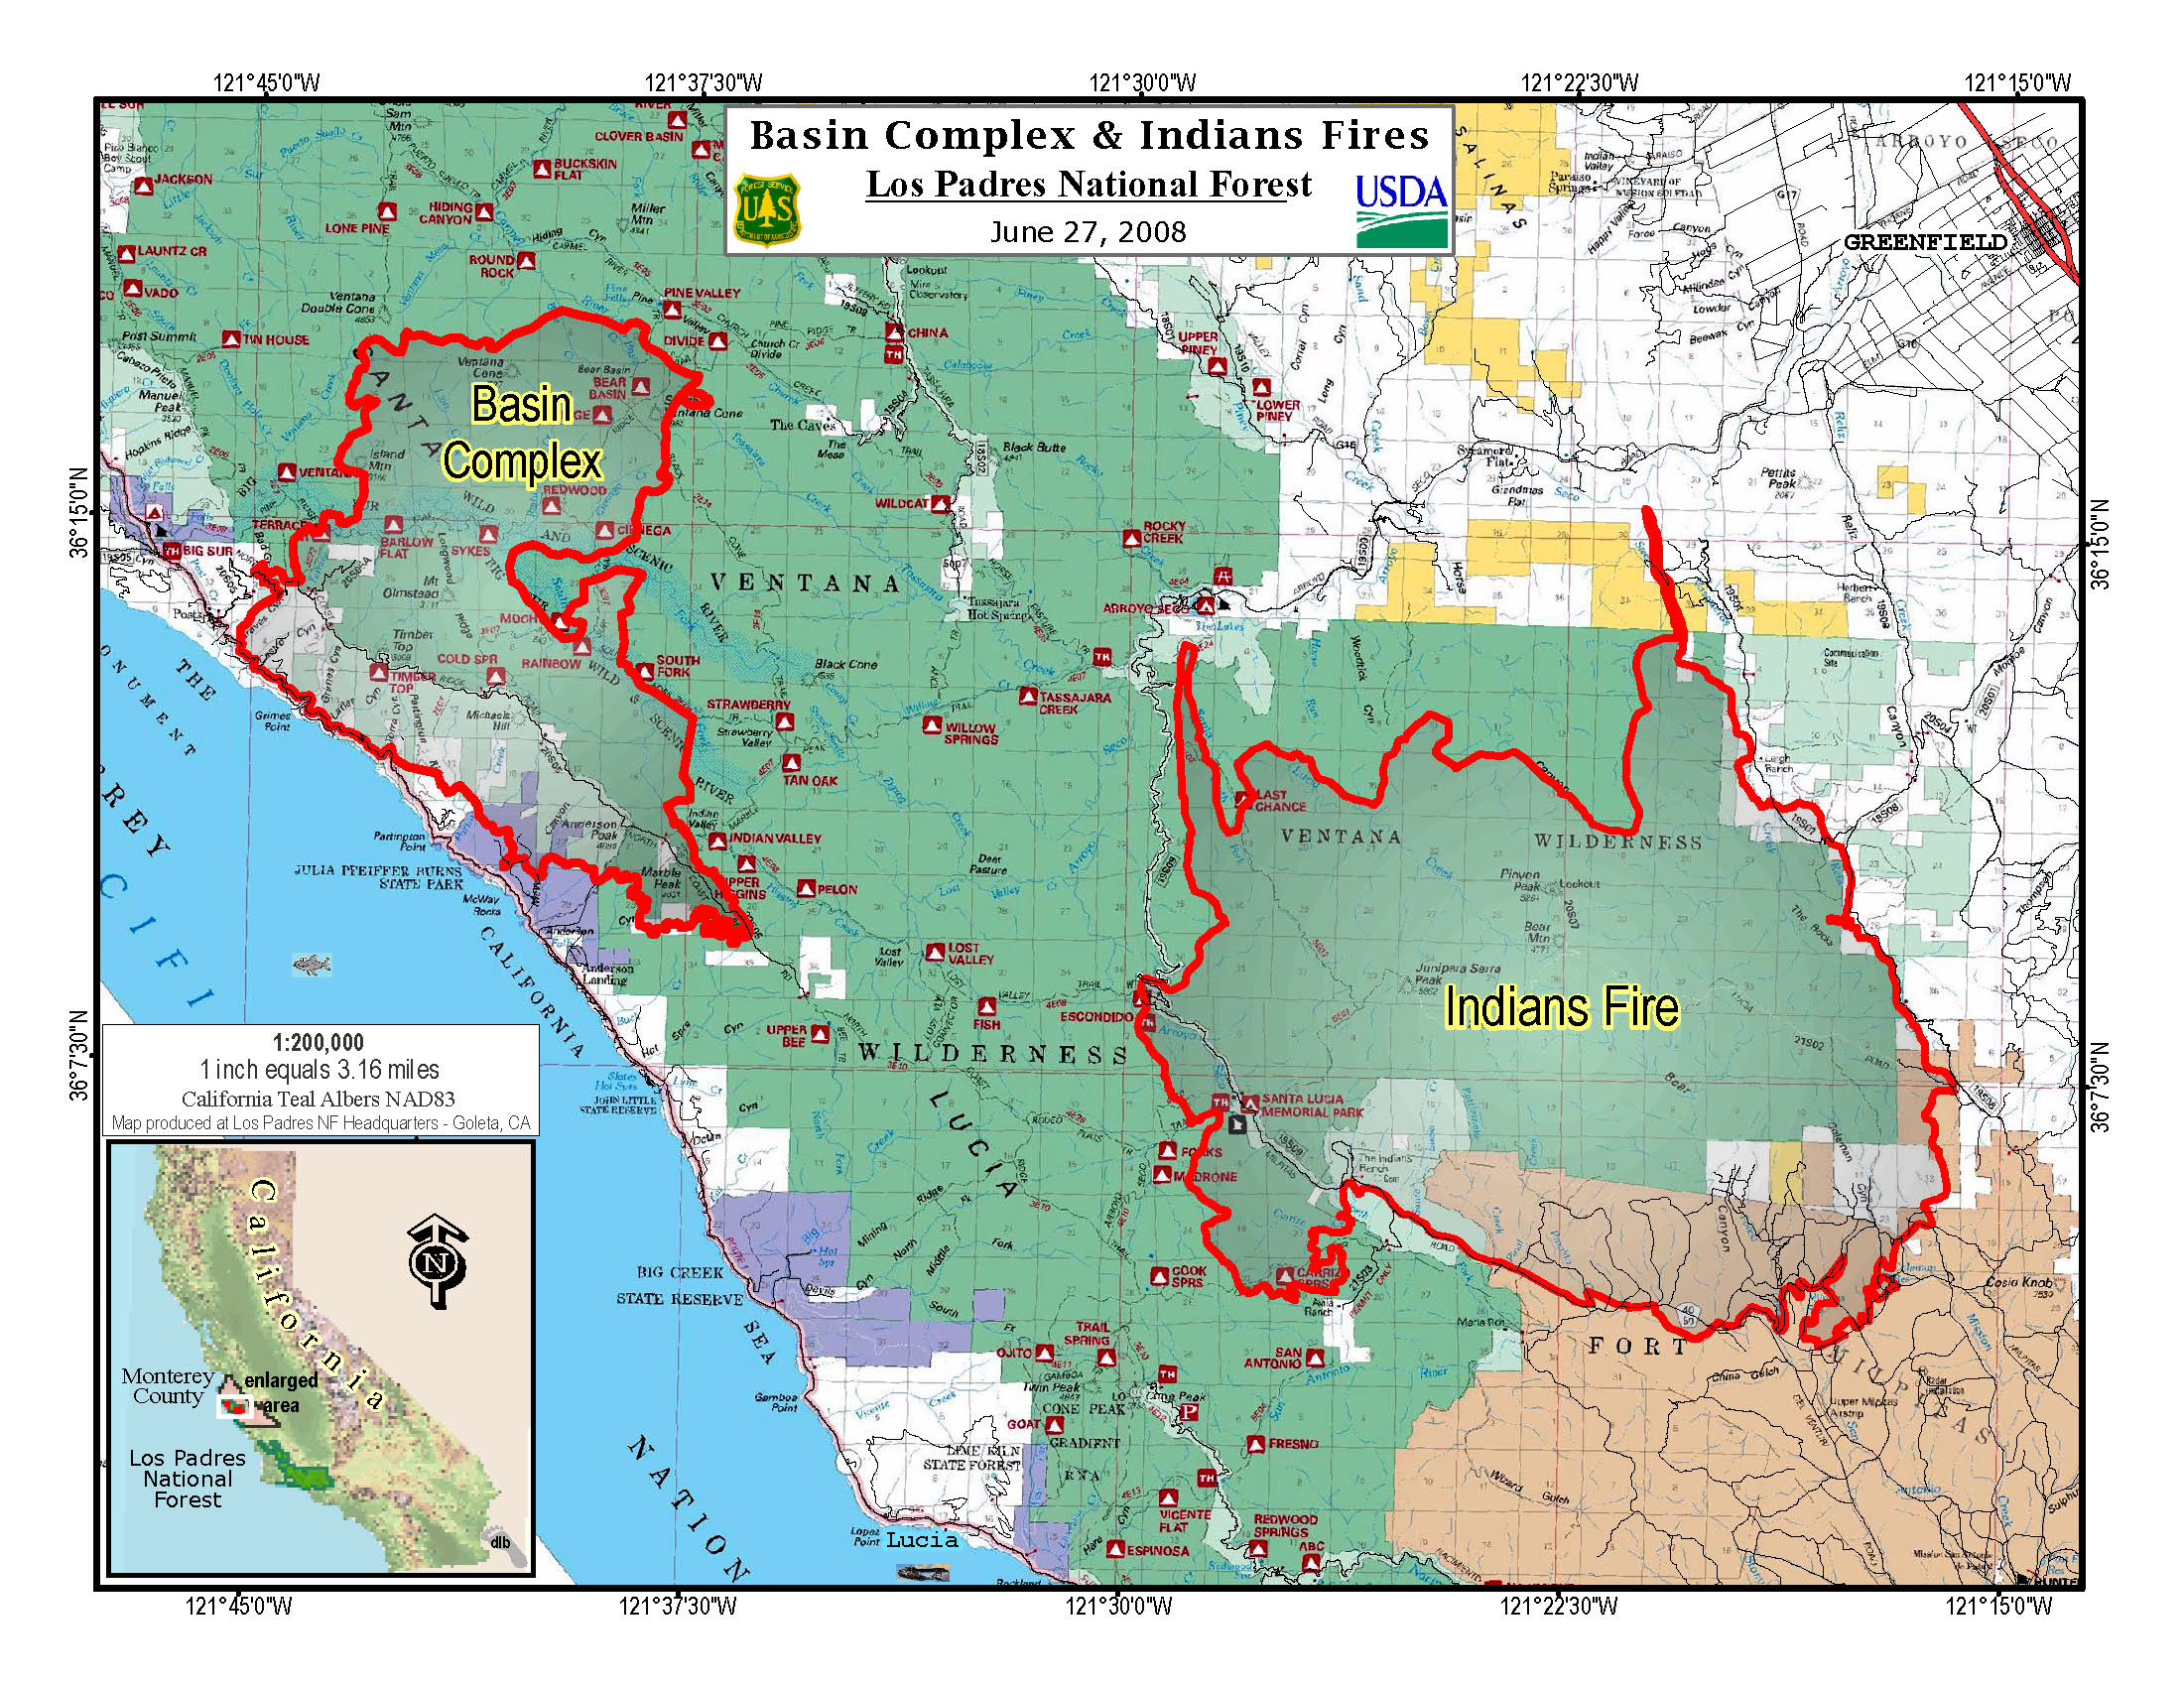 June Fire Map Labeled Map With Map Of Fires In California Today - Where Are The Fires In California On A Map